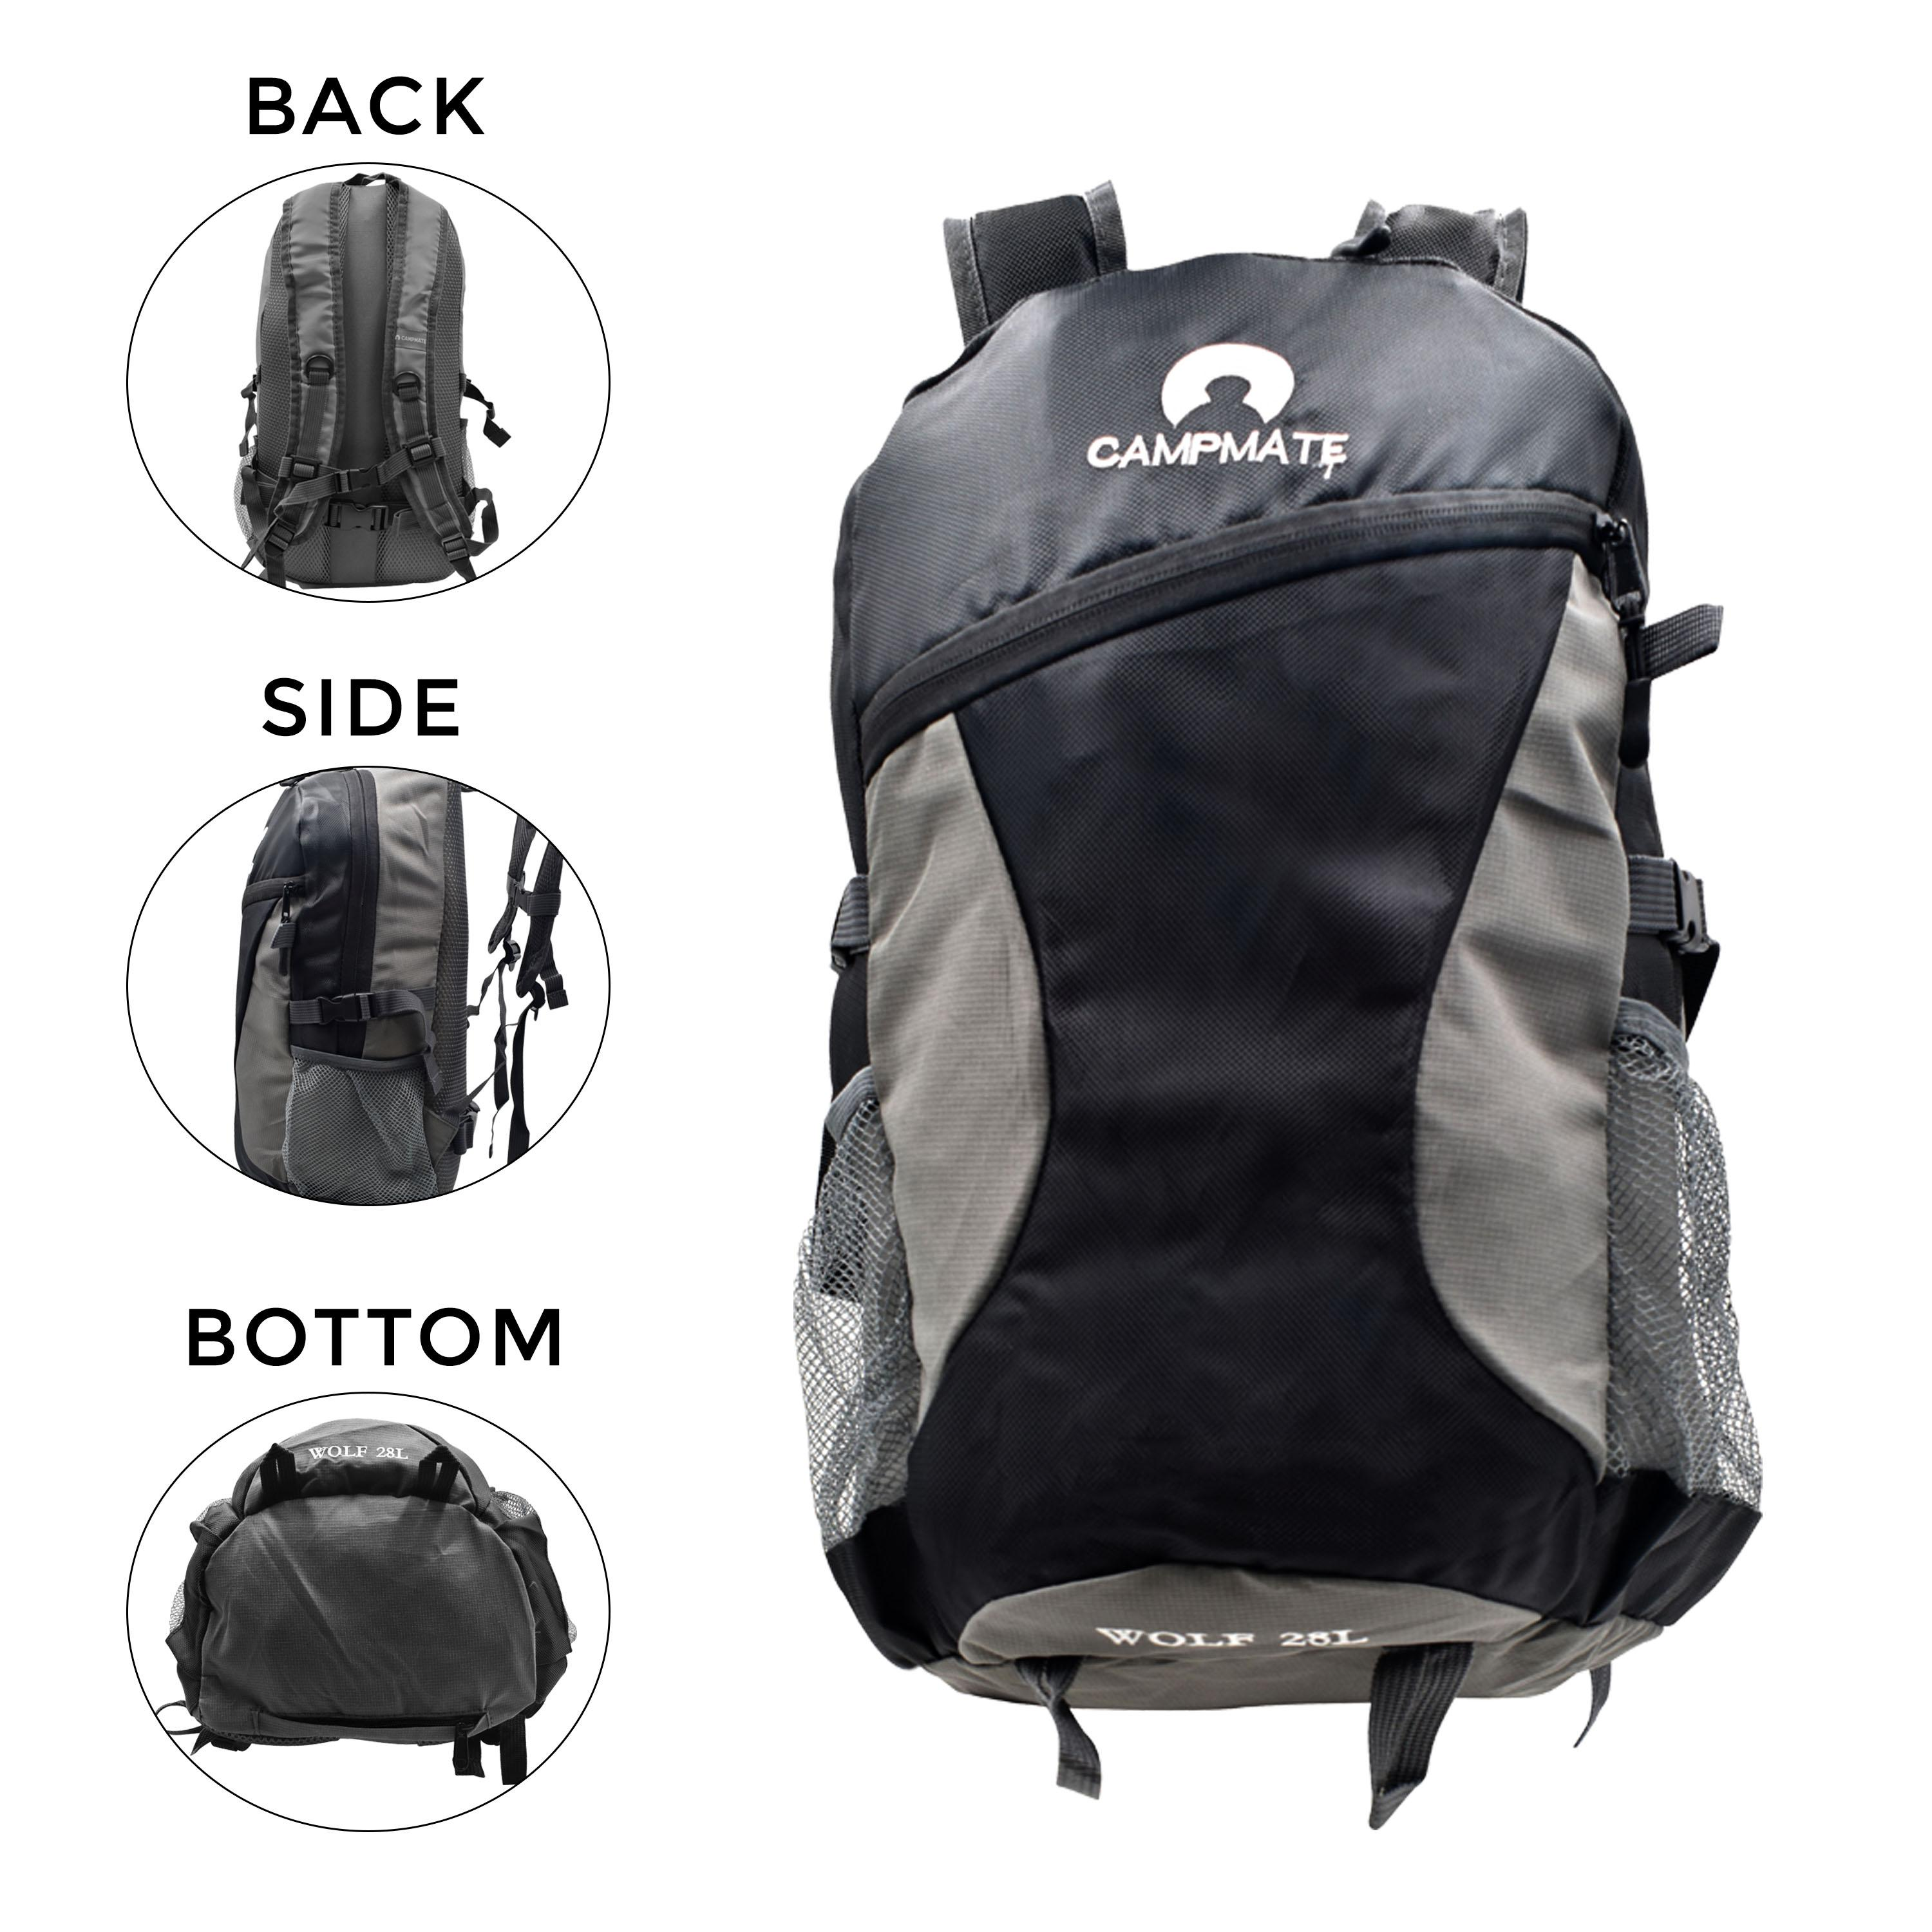 Camping Backpacks for sale - Hiking Backpacks online brands 65ad5e3ffc61c